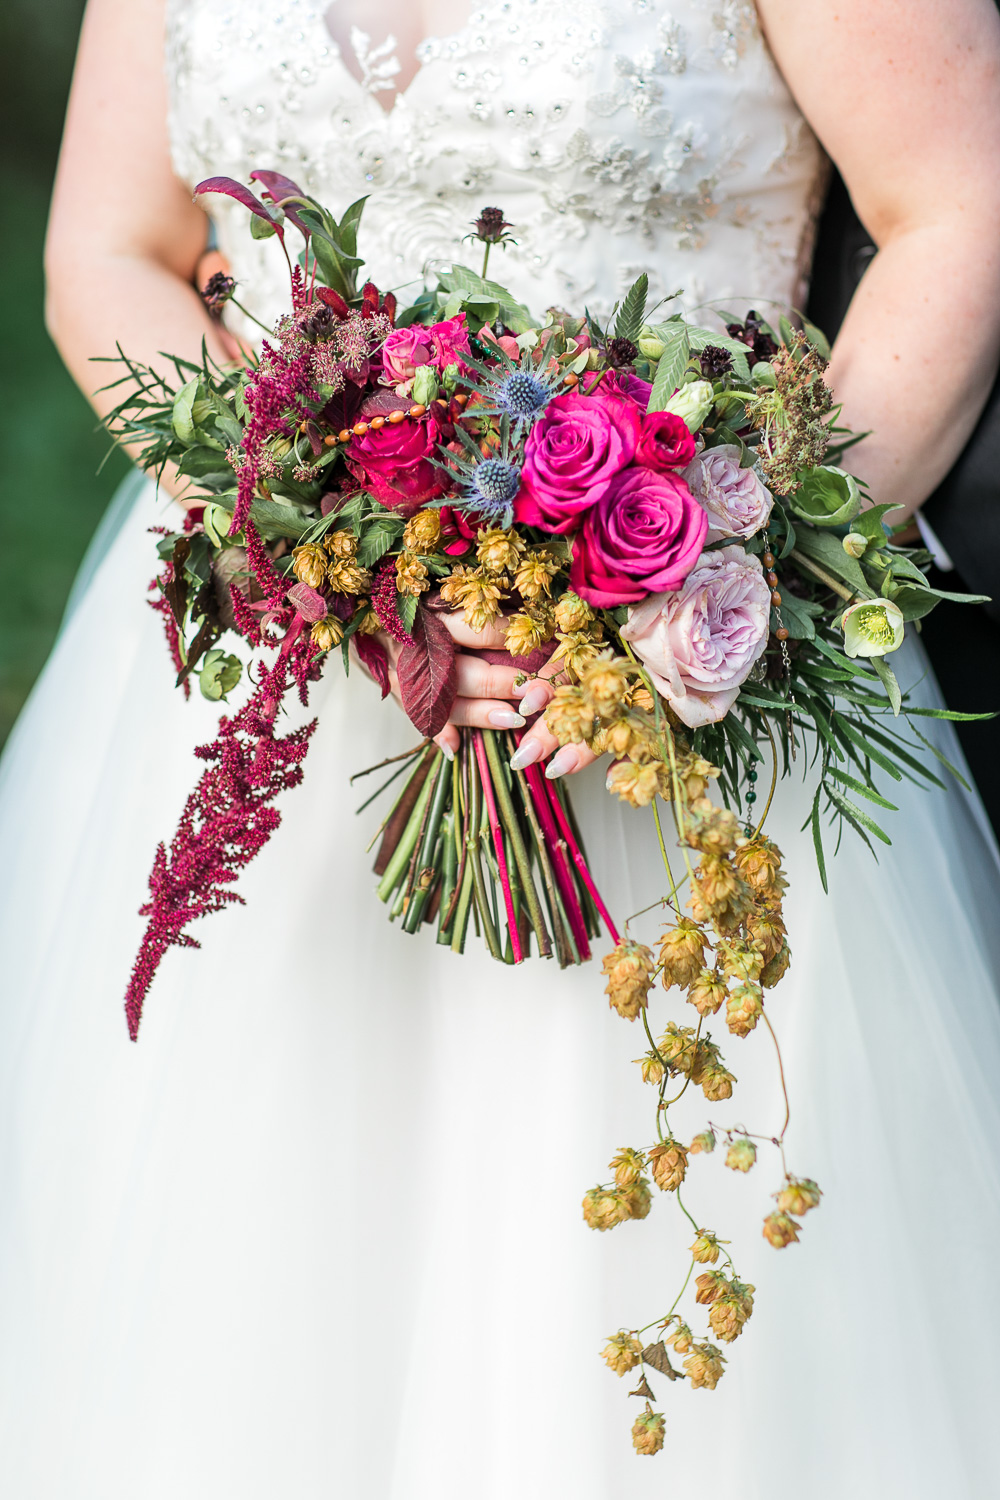 Bridal bouquet with a hanging detail in pink and red tones